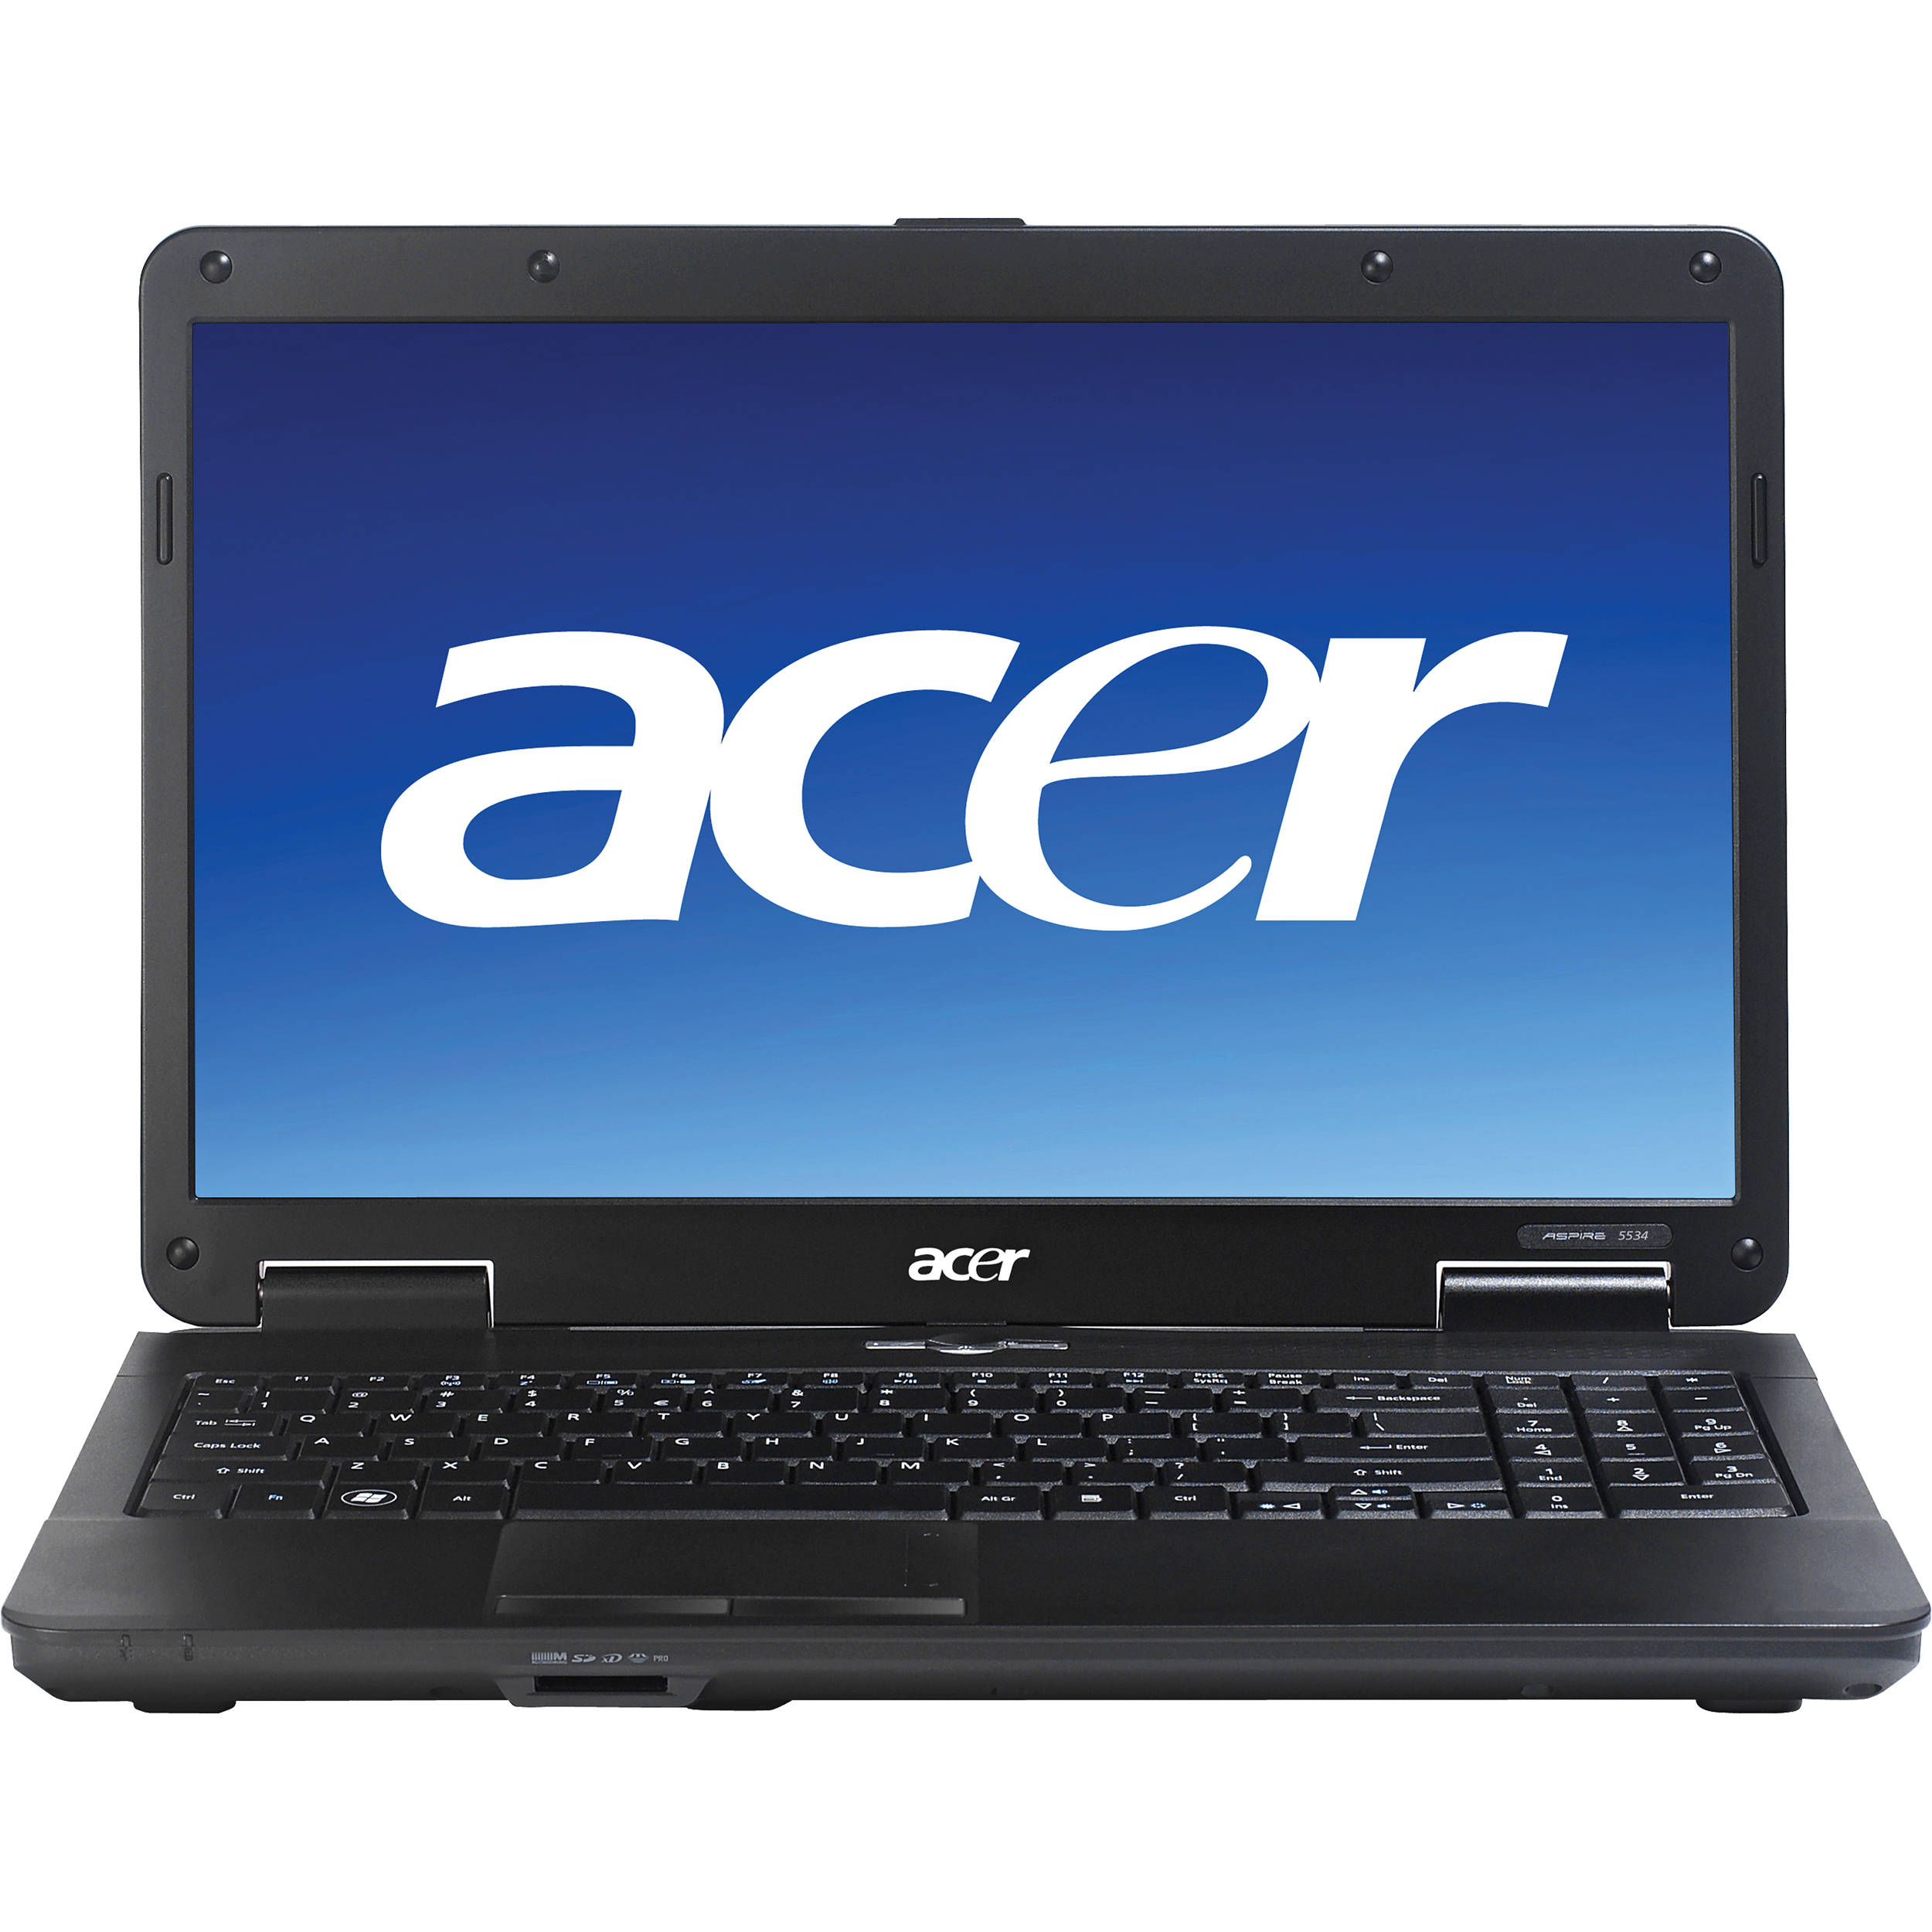 "Acer Aspire AS5334-2598 15.6"" Laptop Computer (Black)"